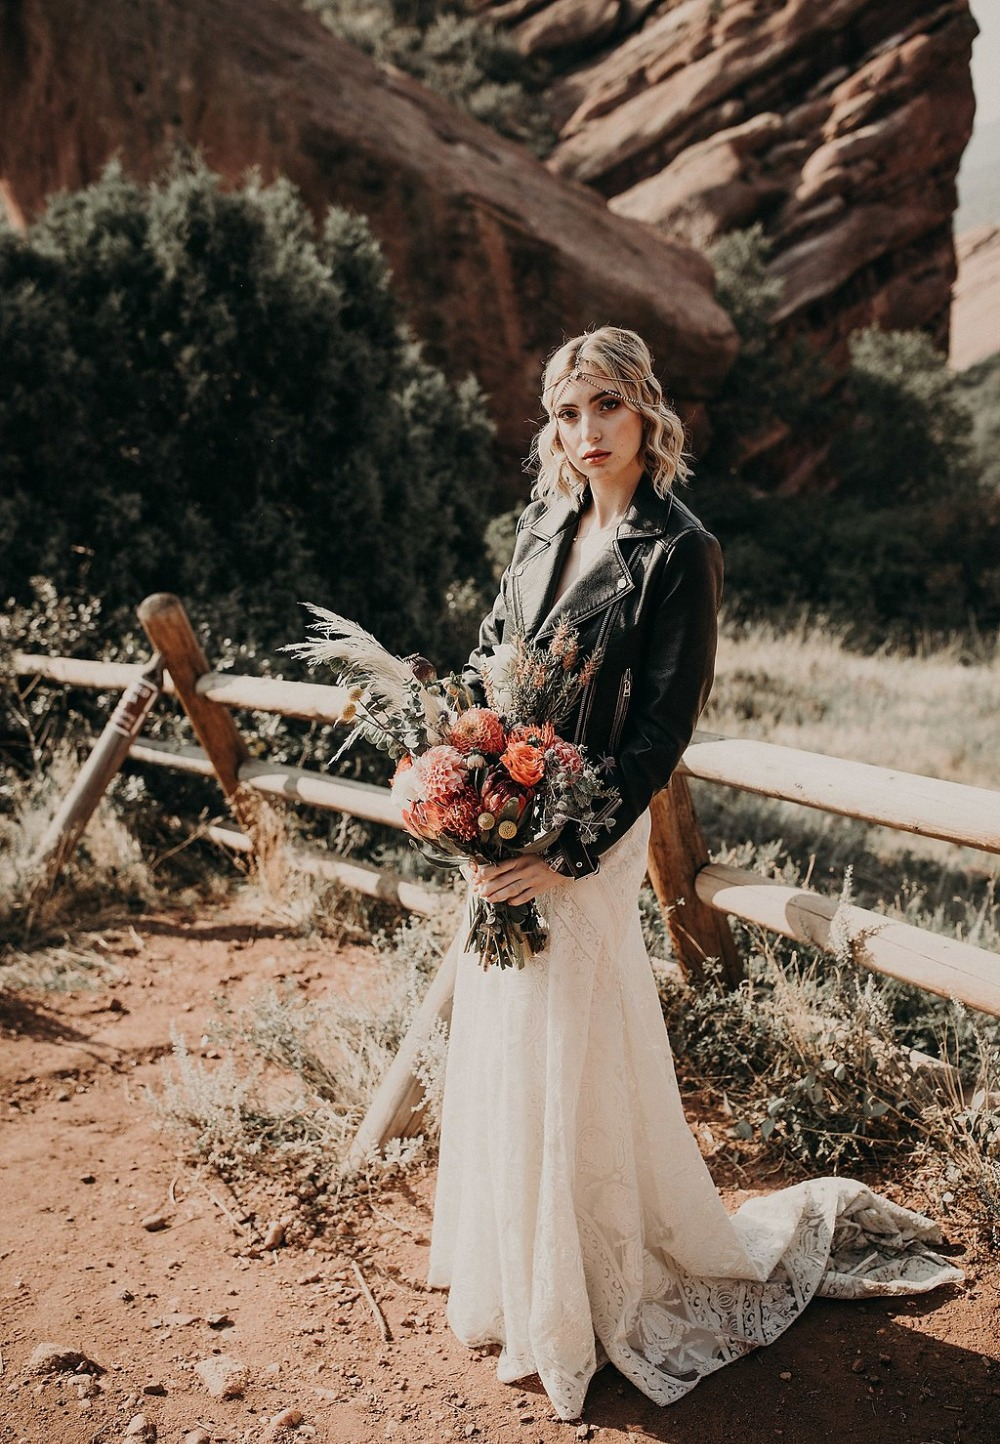 leather jacket wedding style with a boho flair